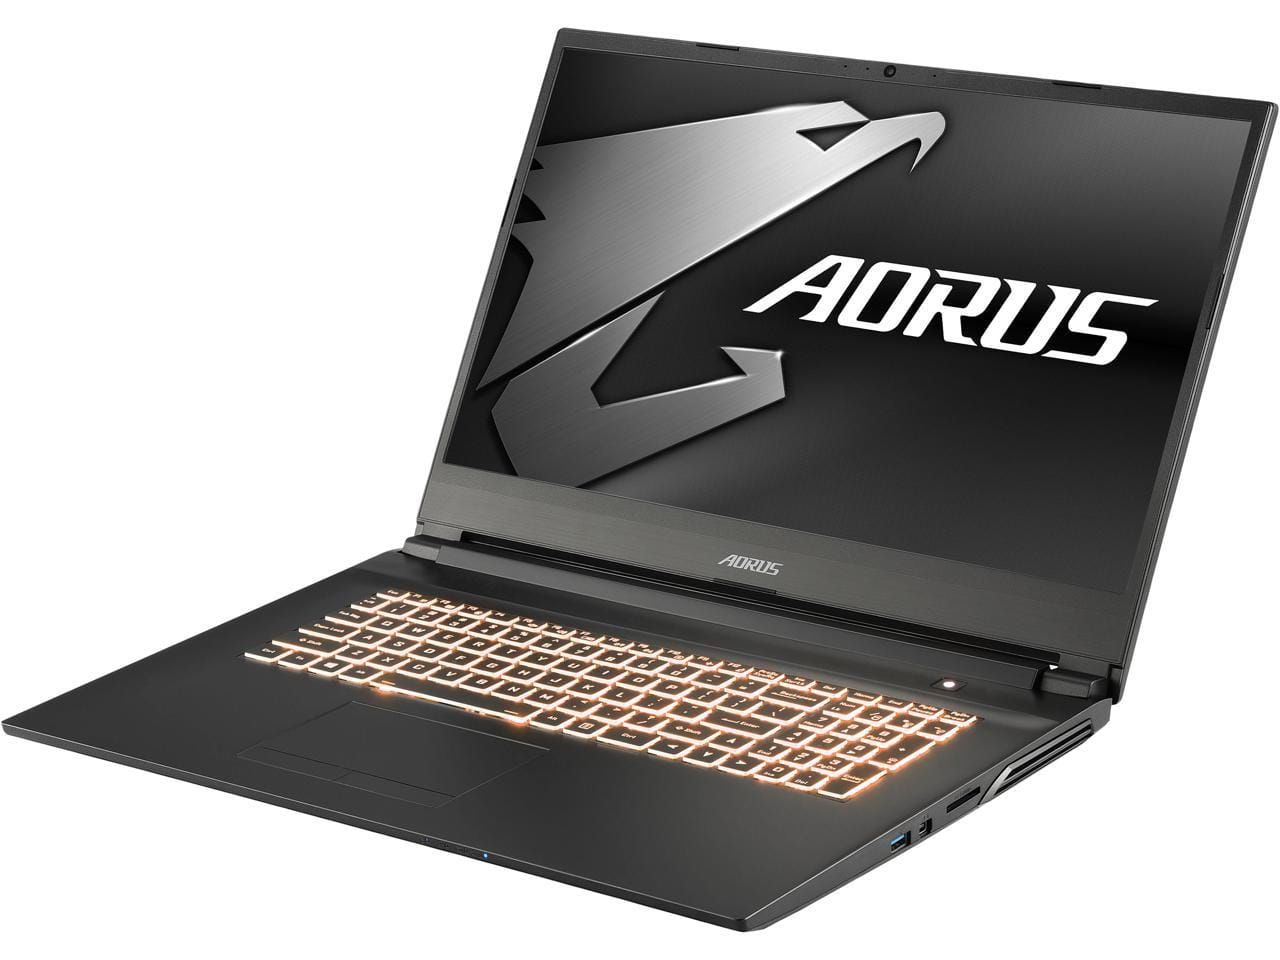 "Gigabyte Aorus 7 17.3"" Gaming Laptop: i7 10750H, 512GB"